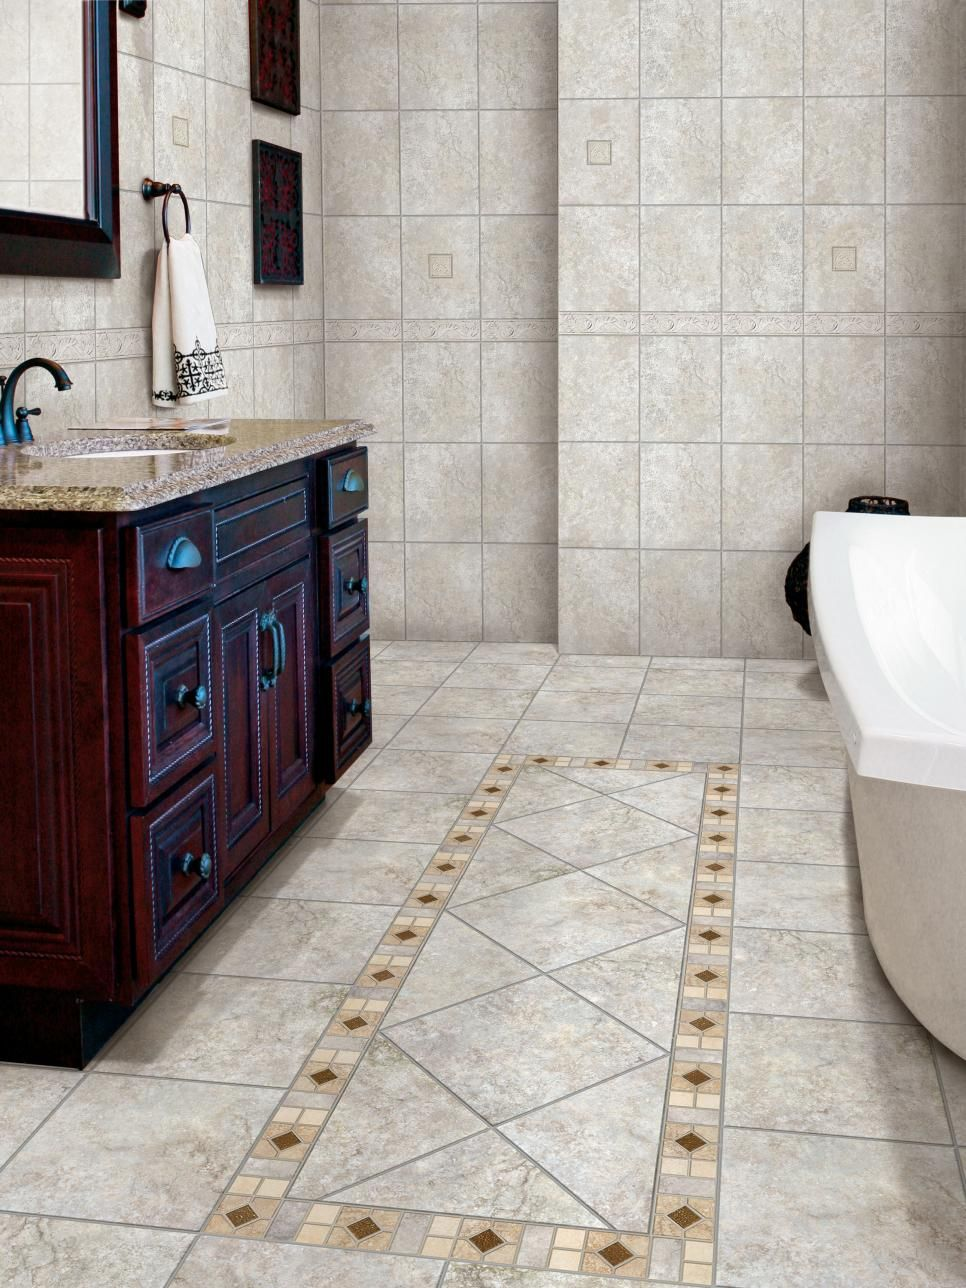 HGTVRemodels Bathroom Floor Buying Guide Gives You Expert Tips And Photos  For Using Stone Tile In Your Bathroom Renovation.